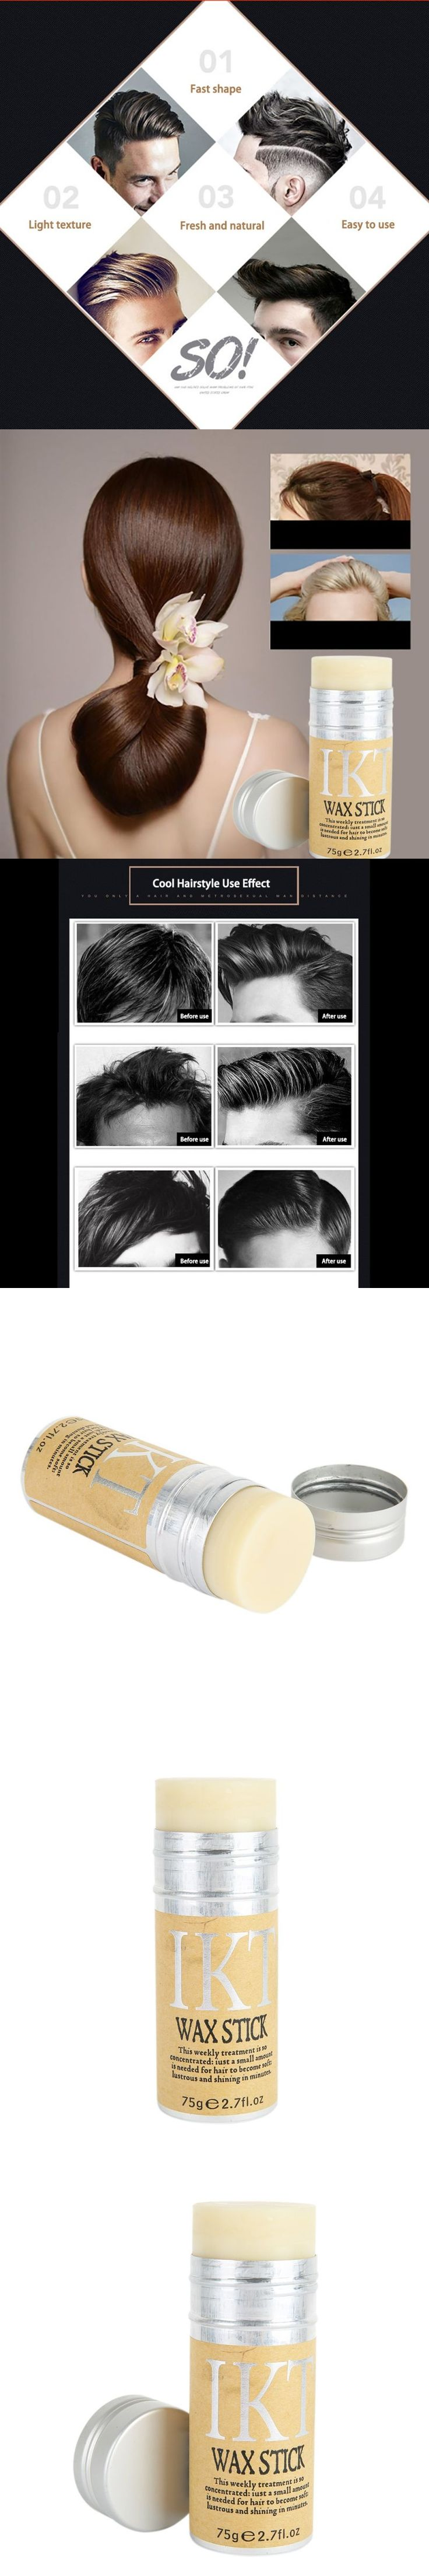 Styling Pomade Stick Rapid fixed Repair Hair Smell Fresh not oily Male Female Hair Wax Rod Broken Hair Finishing D2